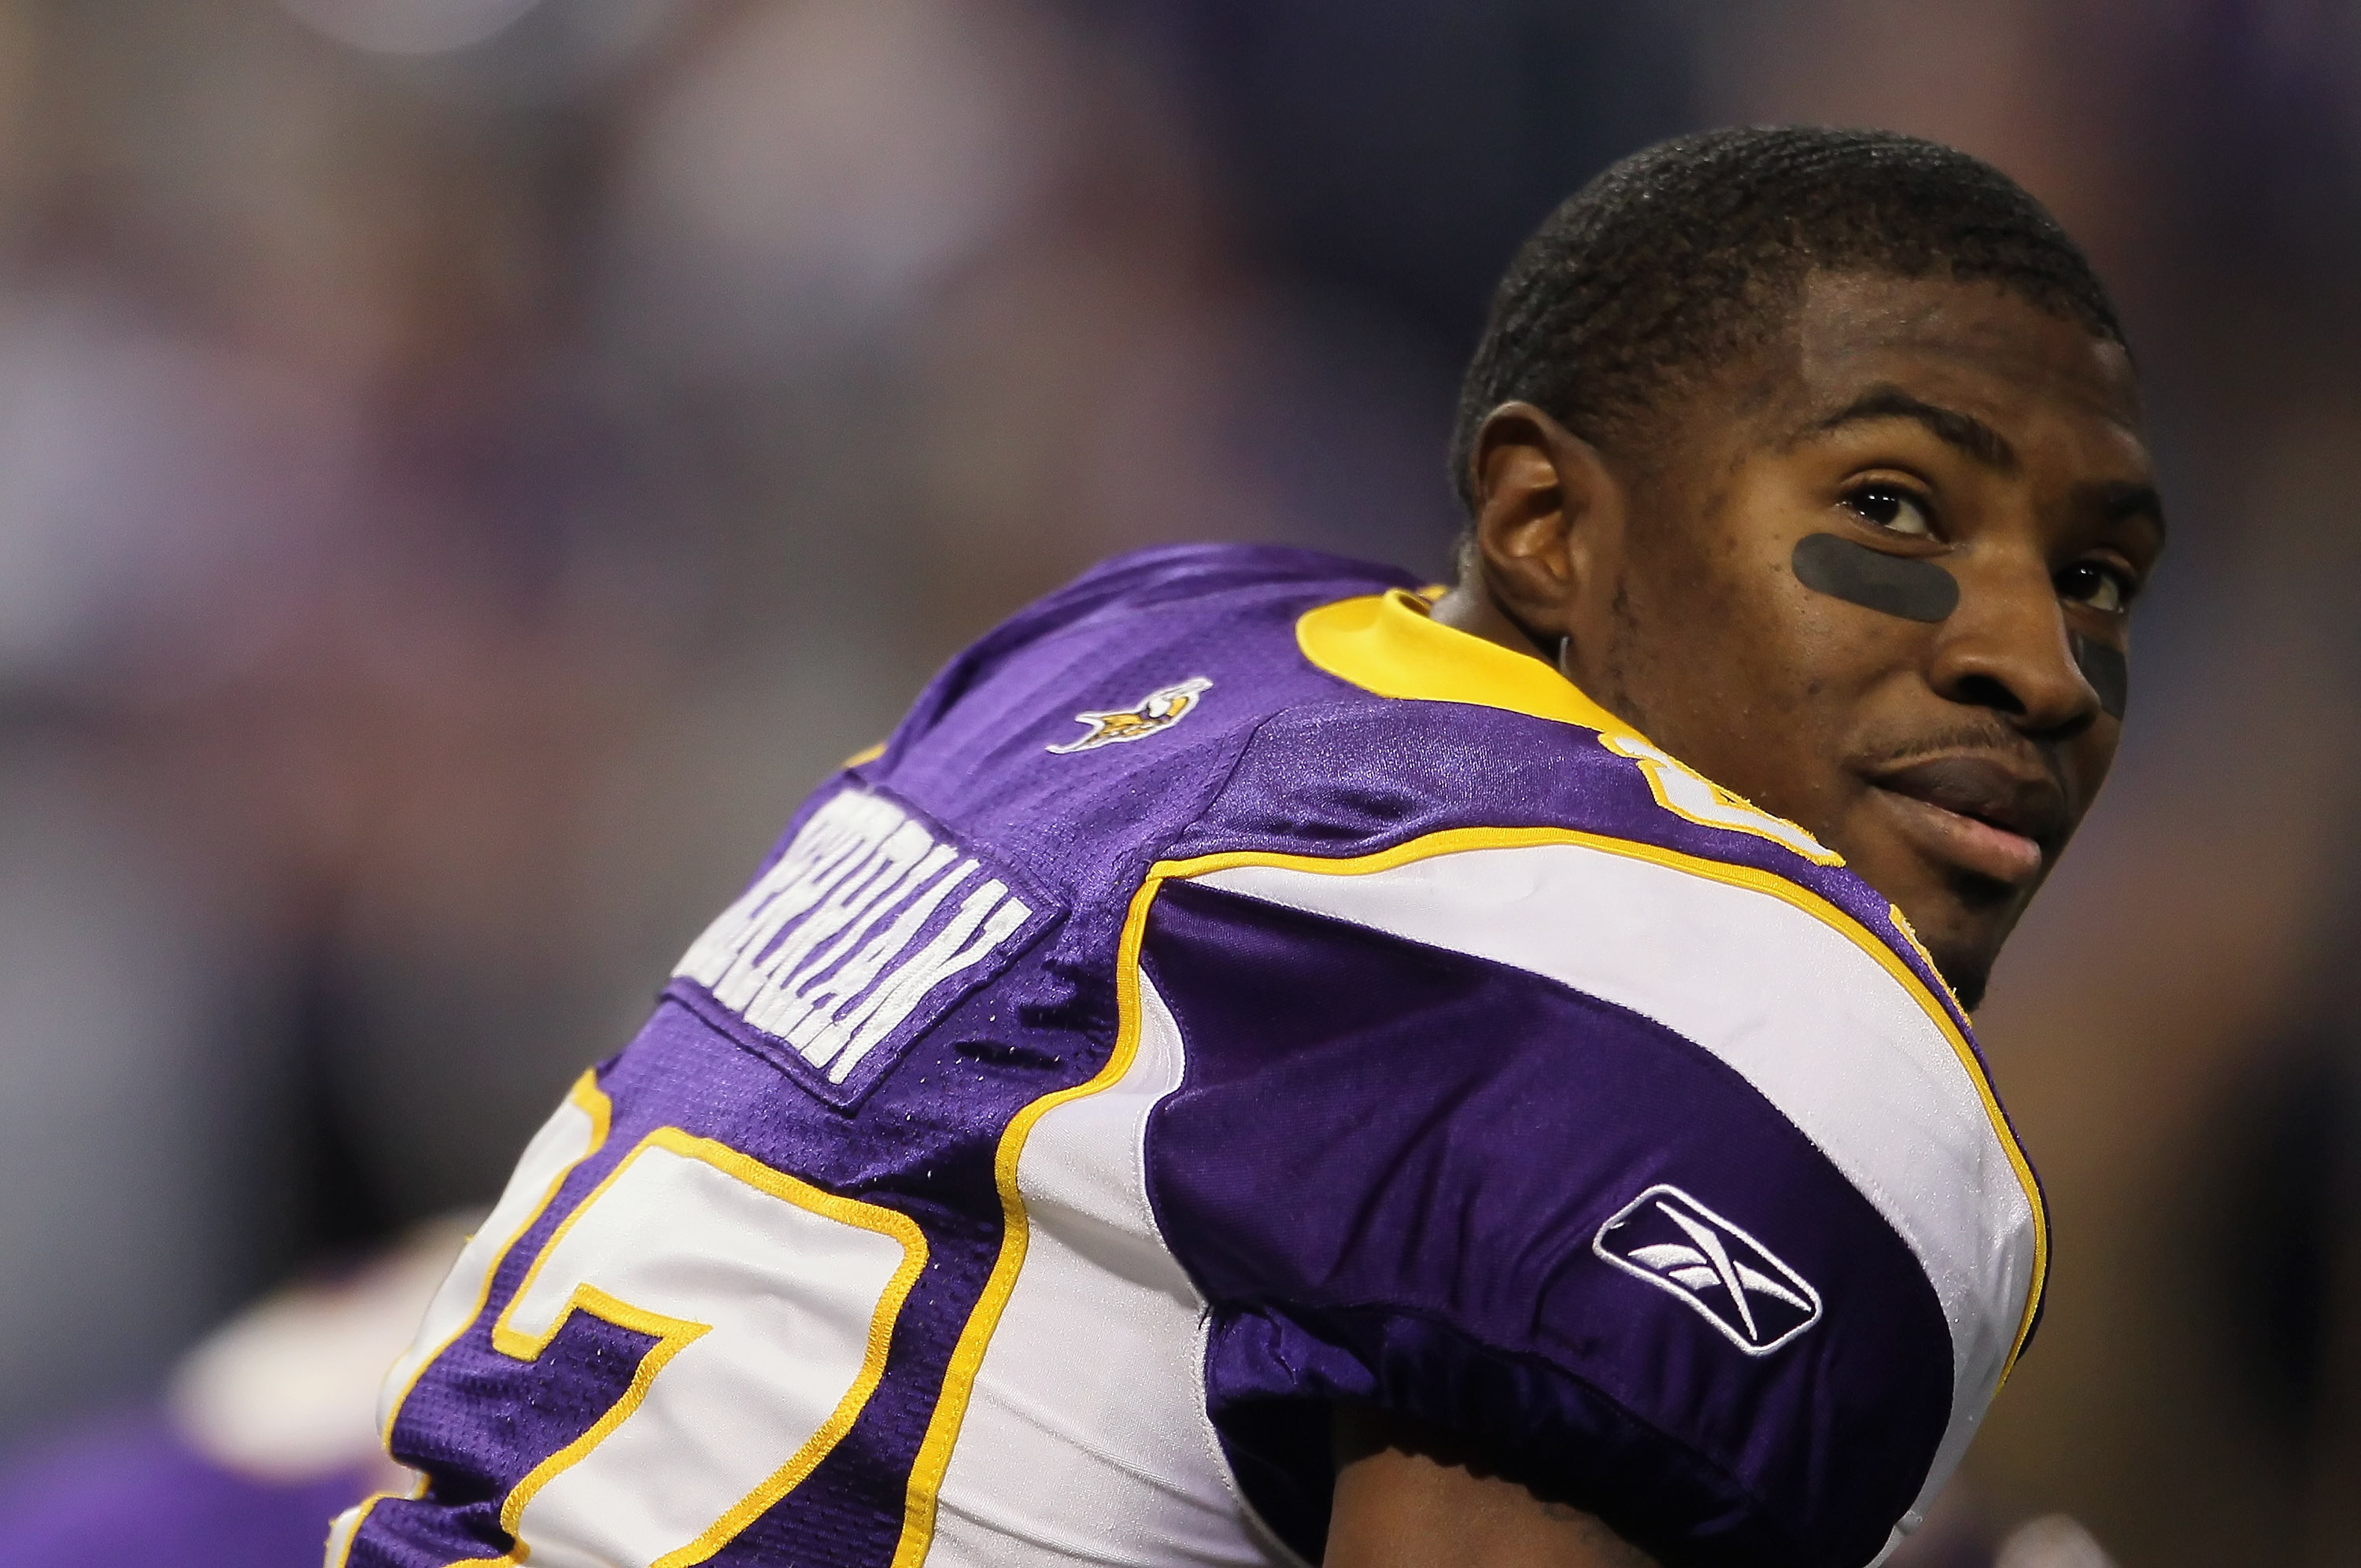 MINNEAPOLIS - SEPTEMBER 26:  Bernard Berrian #87 of the Minnesota Vikings looks on prior to the start of the game against the Detroit Lions at Mall of America Field on September 26, 2010 in Minneapolis, Minnesota.  (Photo by Jeff Gross/Getty Images)